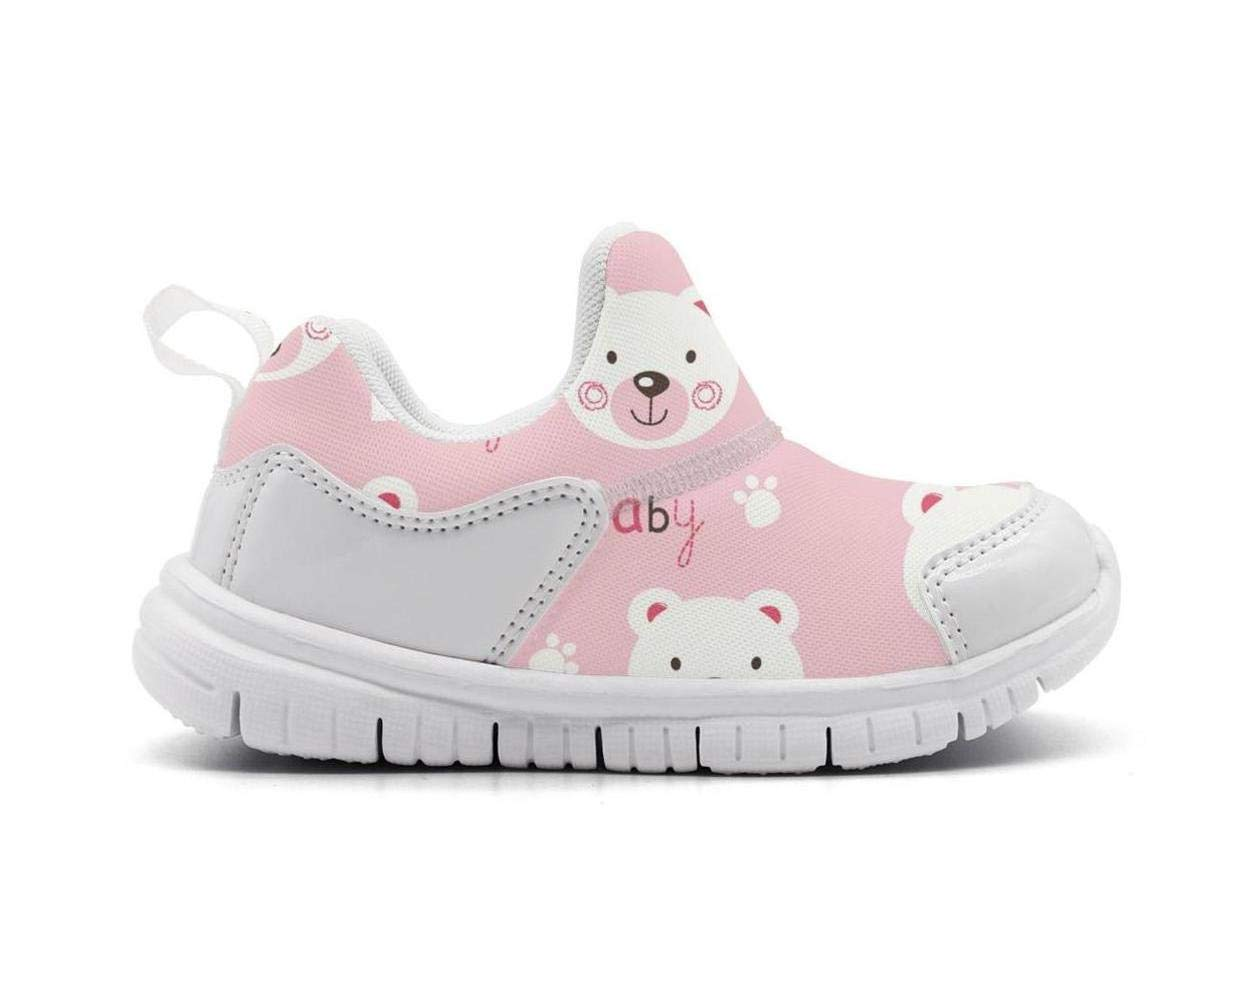 ONEYUAN Children Pink Bear Baby Decor Kid Casual Lightweight Sport Shoes Sneakers Walking Athletic Shoes